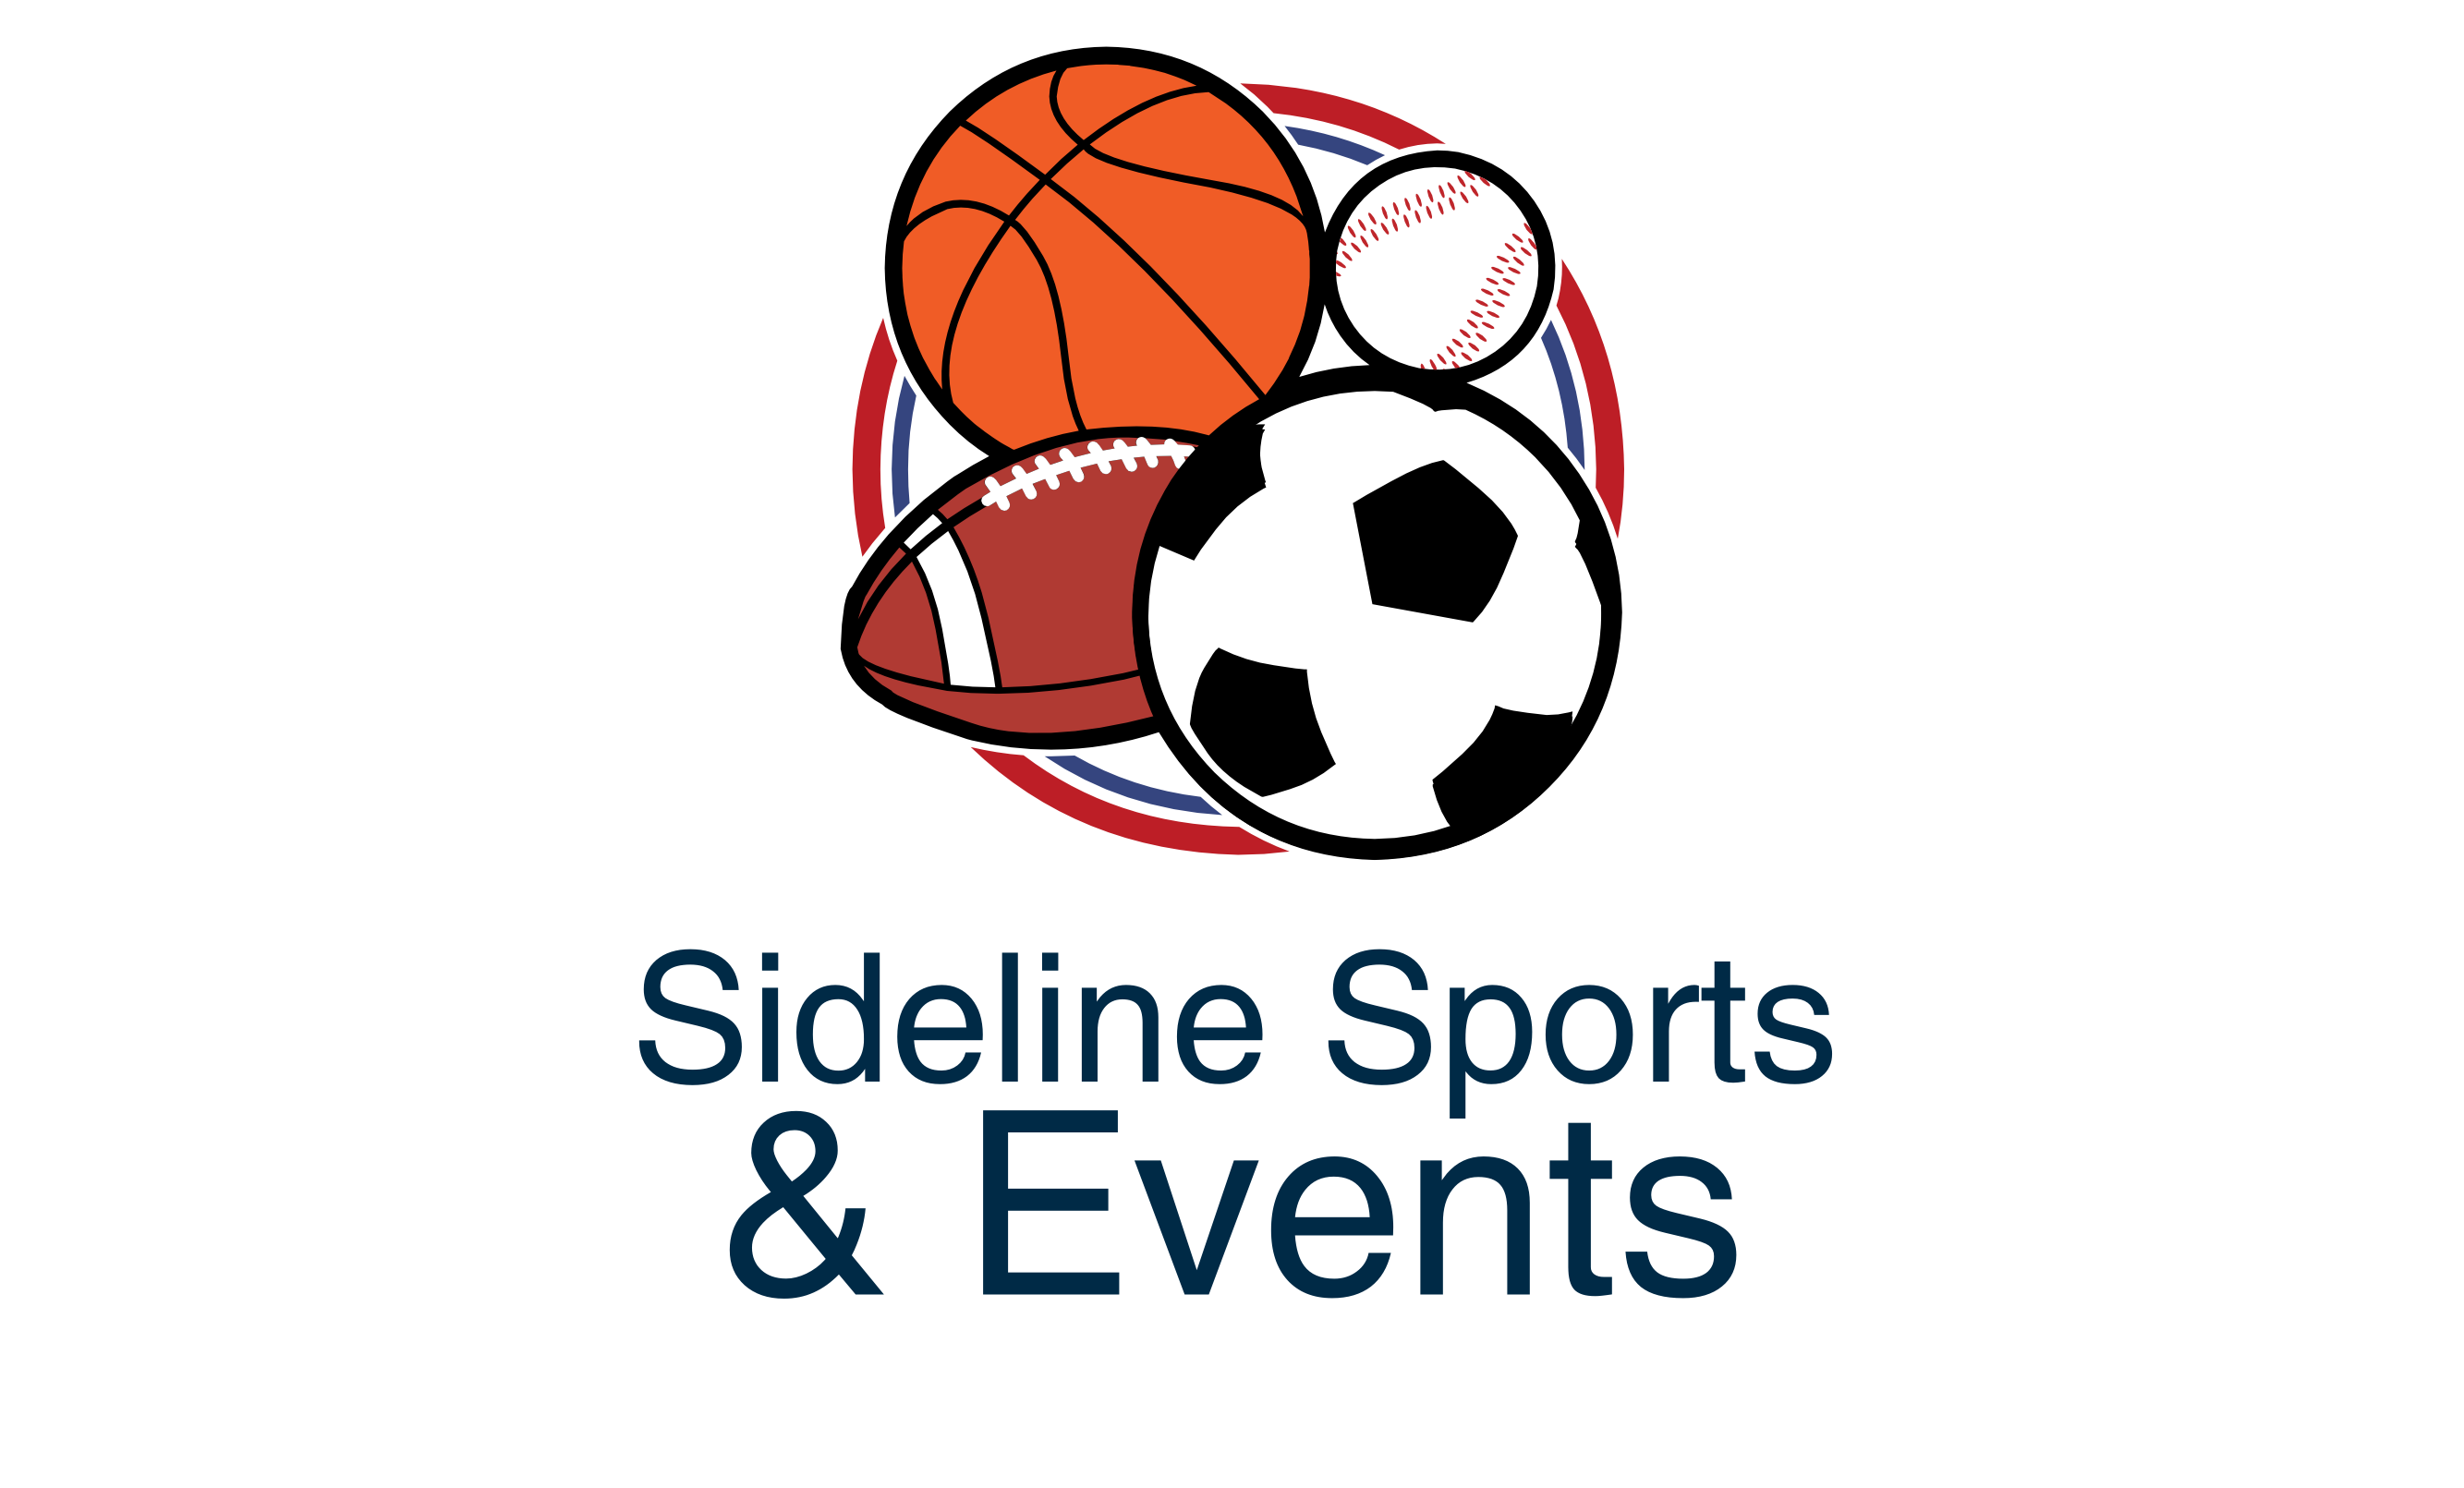 Sideline Sports & Events